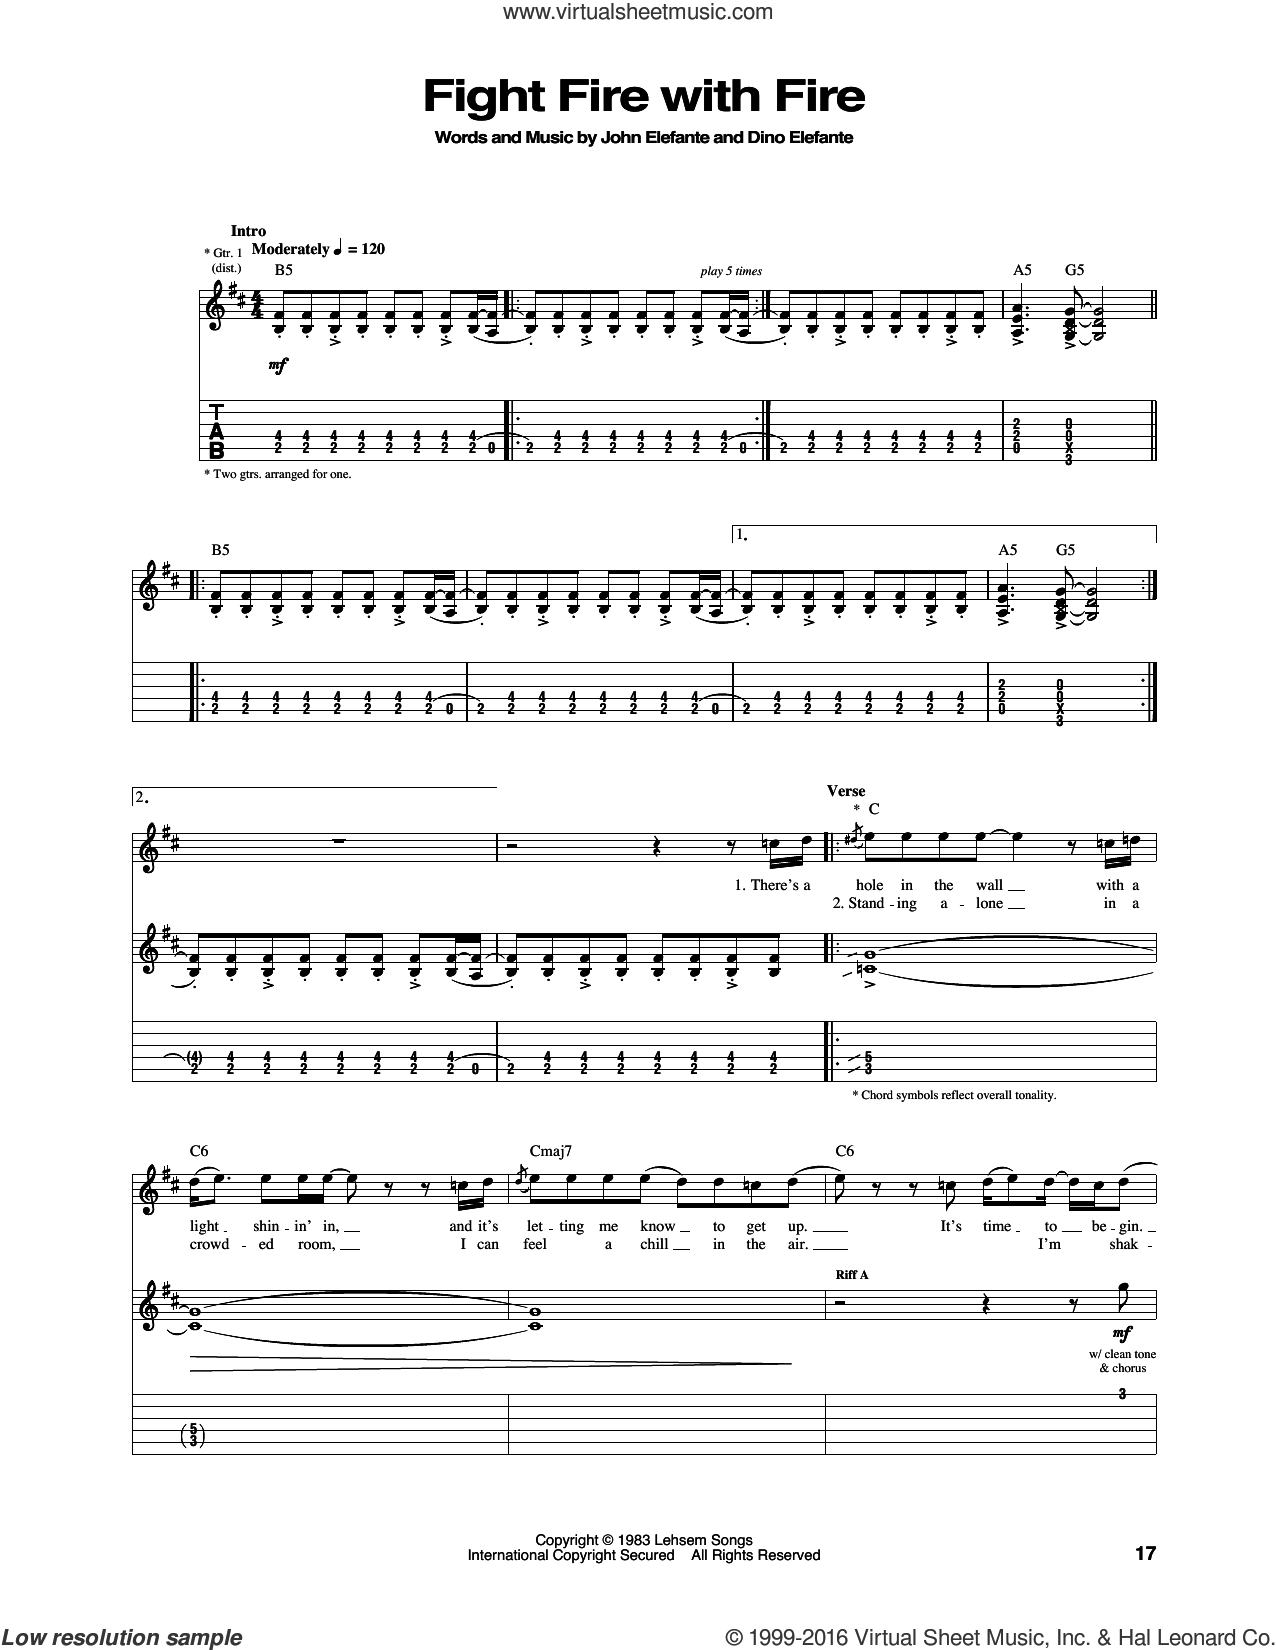 Fight Fire With Fire sheet music for guitar (tablature) by Kansas, Dino Elefante and John Elefante, intermediate